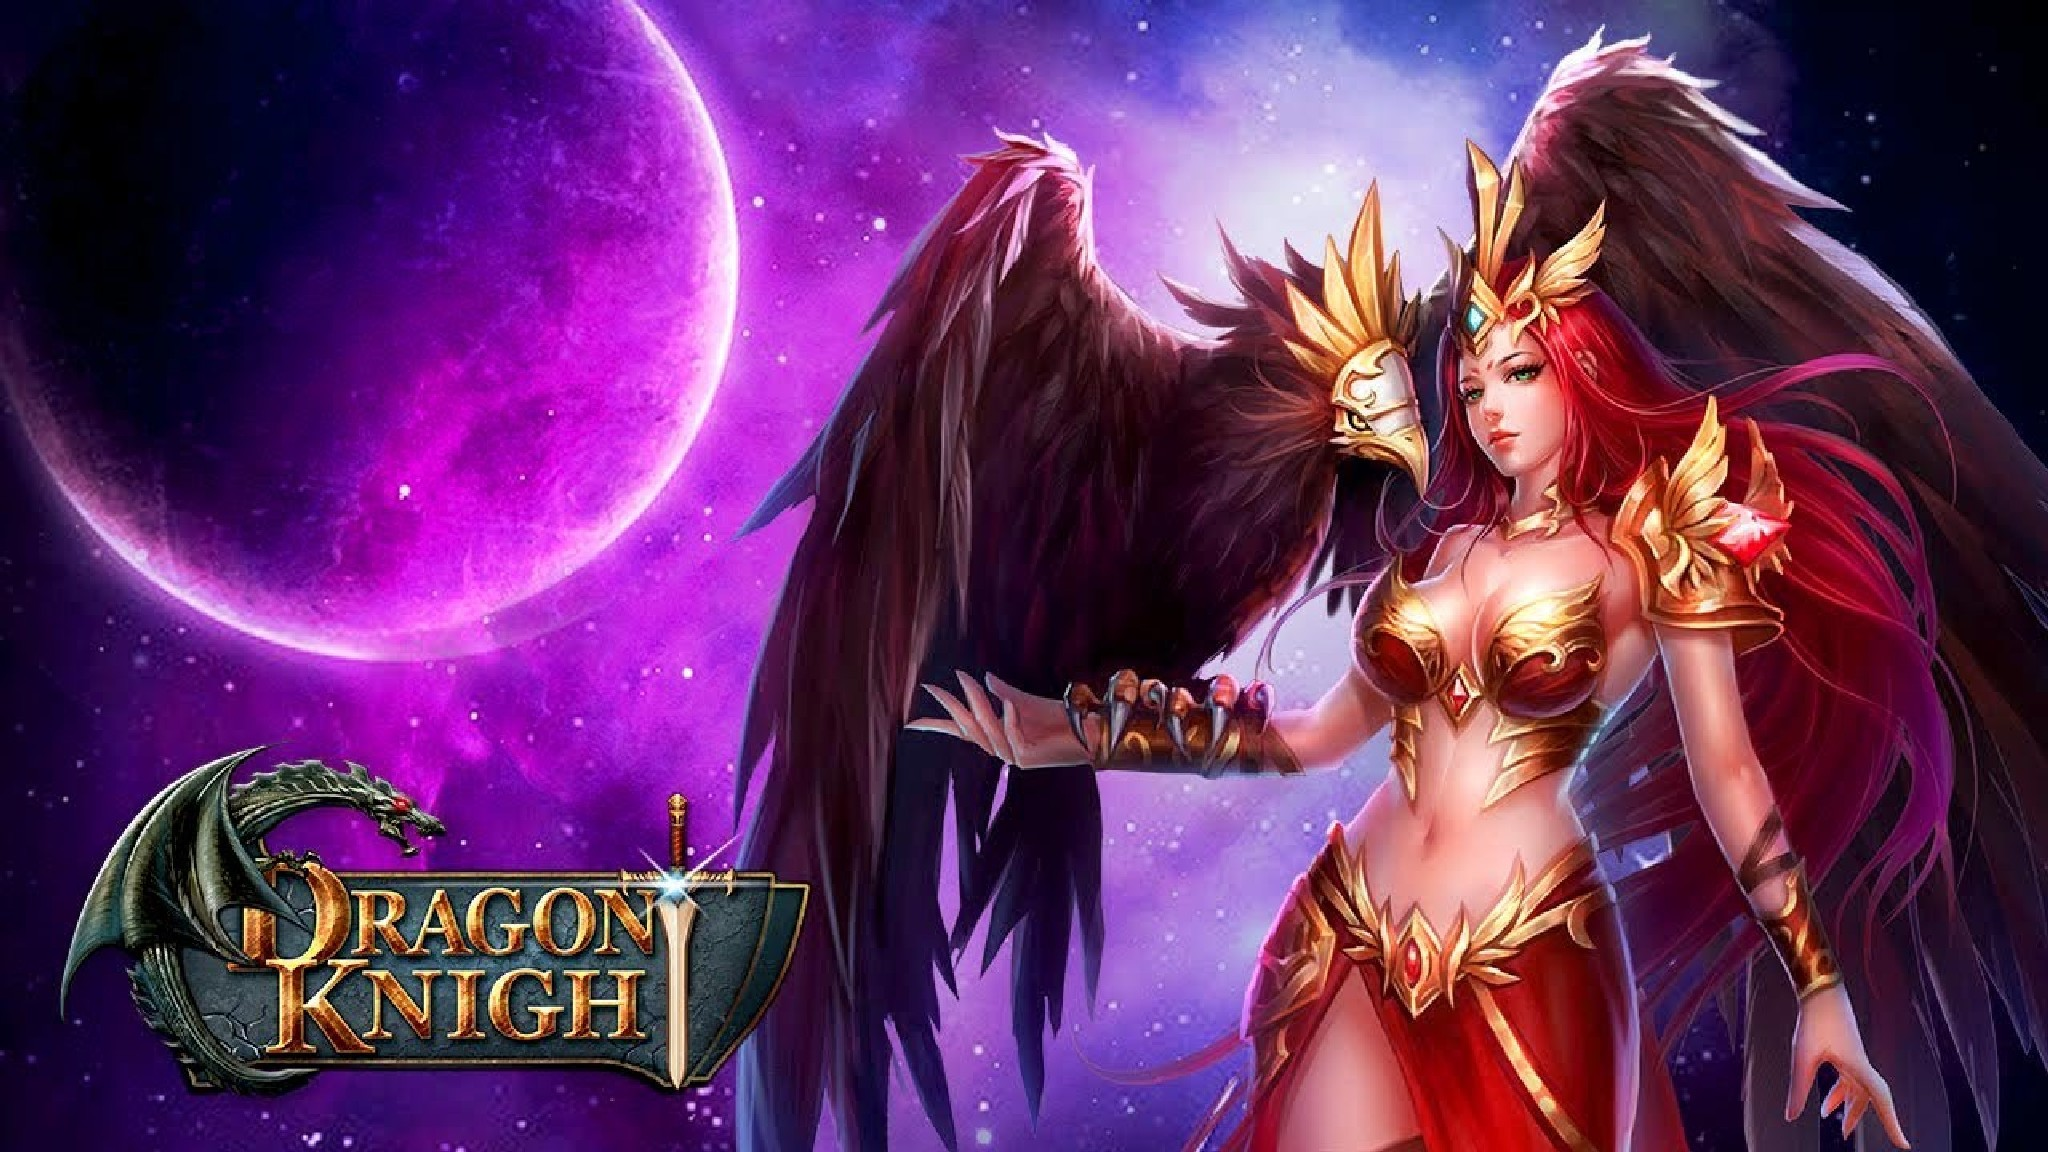 Играть Dragon Knight онлайн в браузере